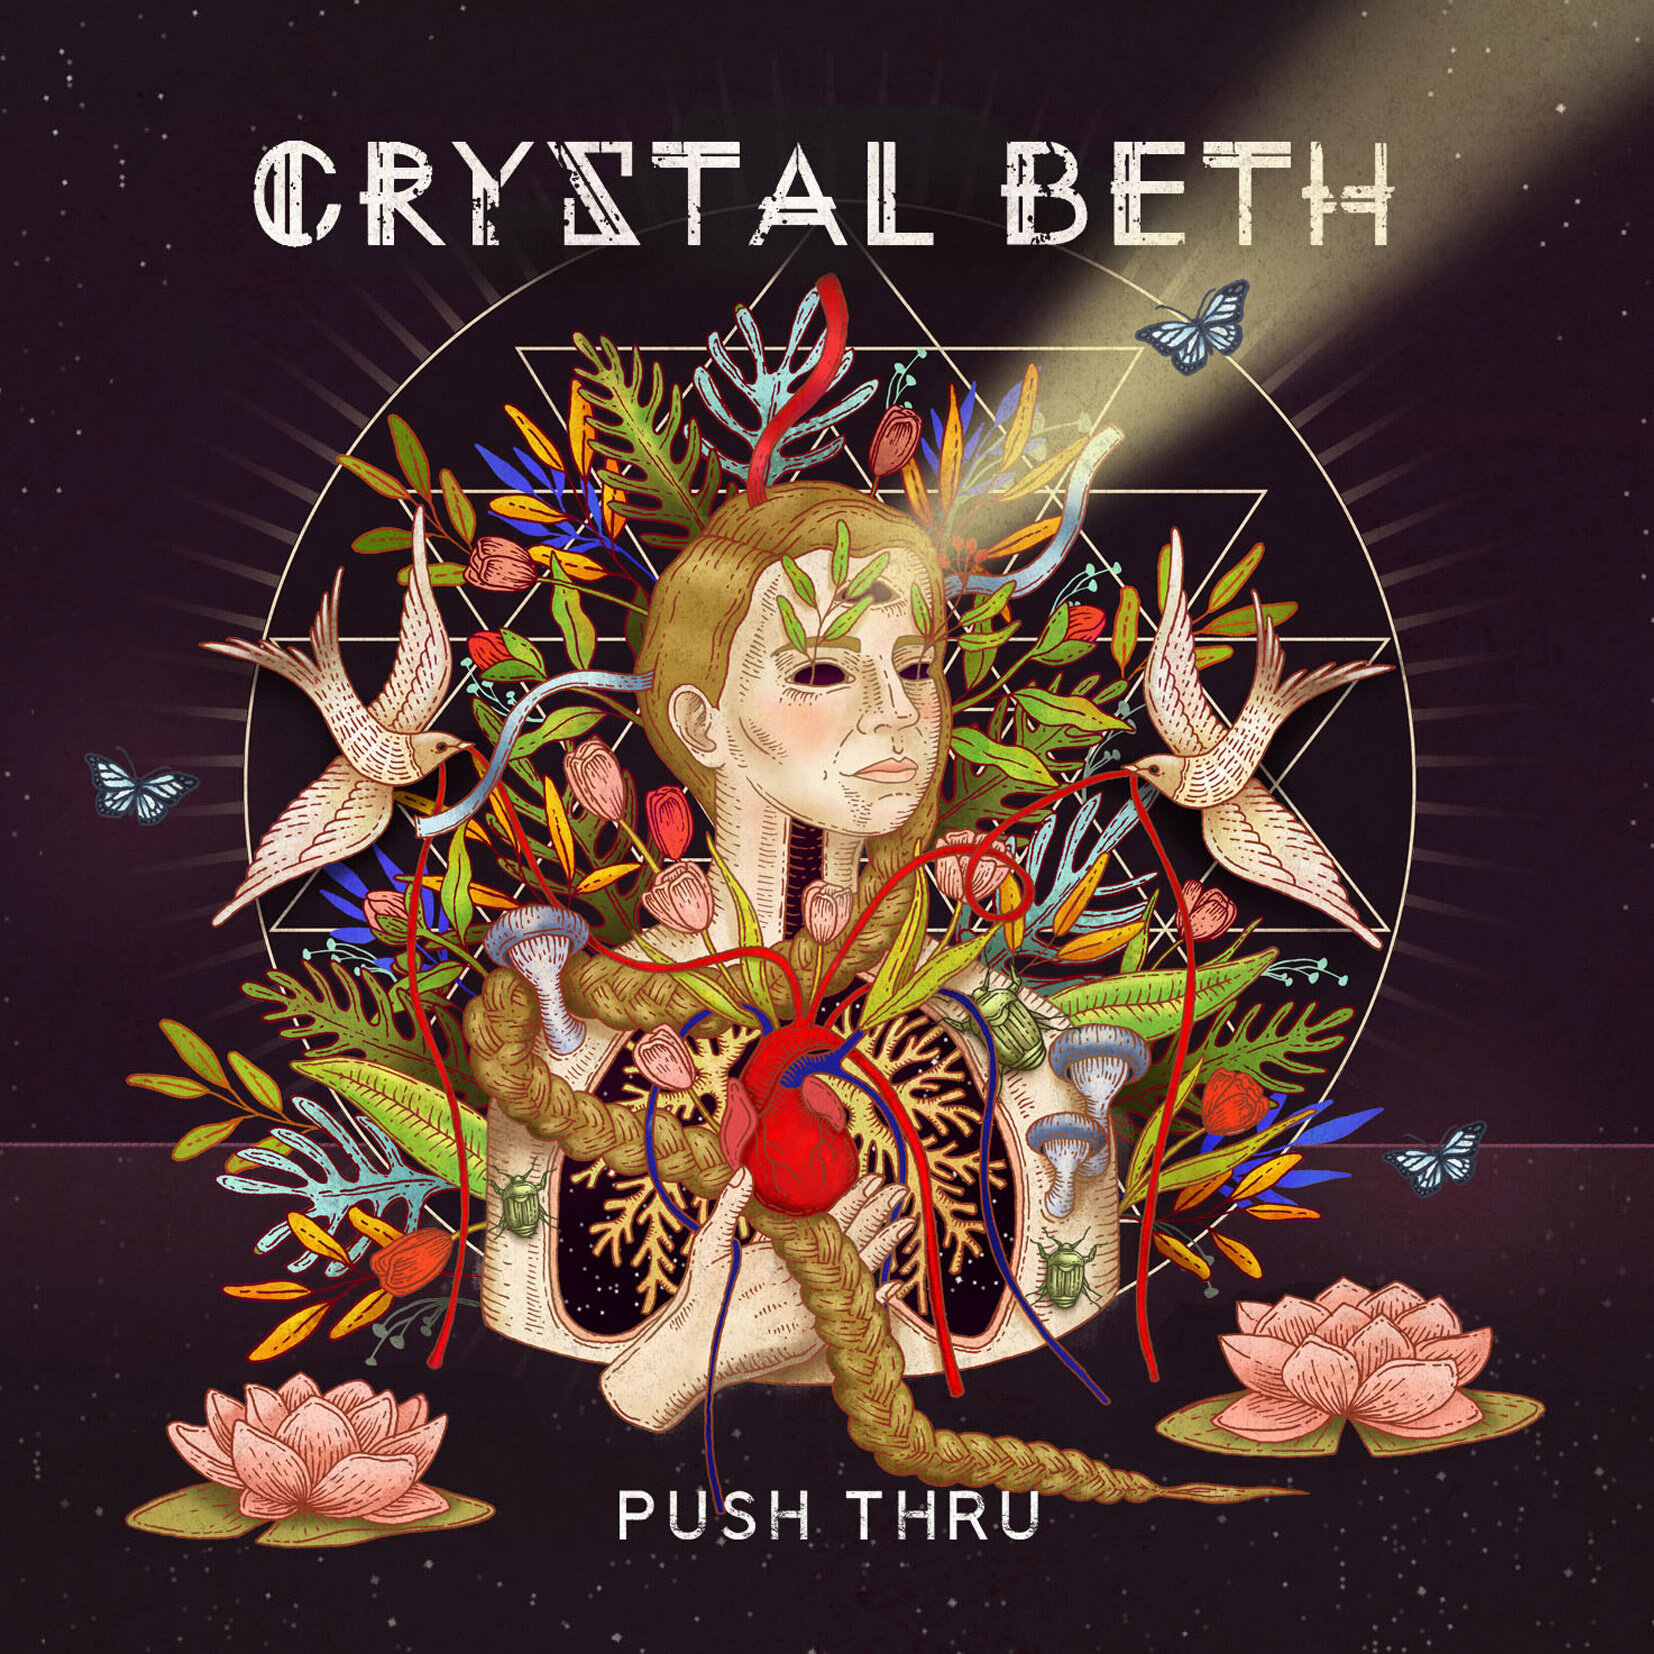 Art for Crystal Beth's  Push Thru  album by Ale De la Torre. Album cover art for CD and vinyl.